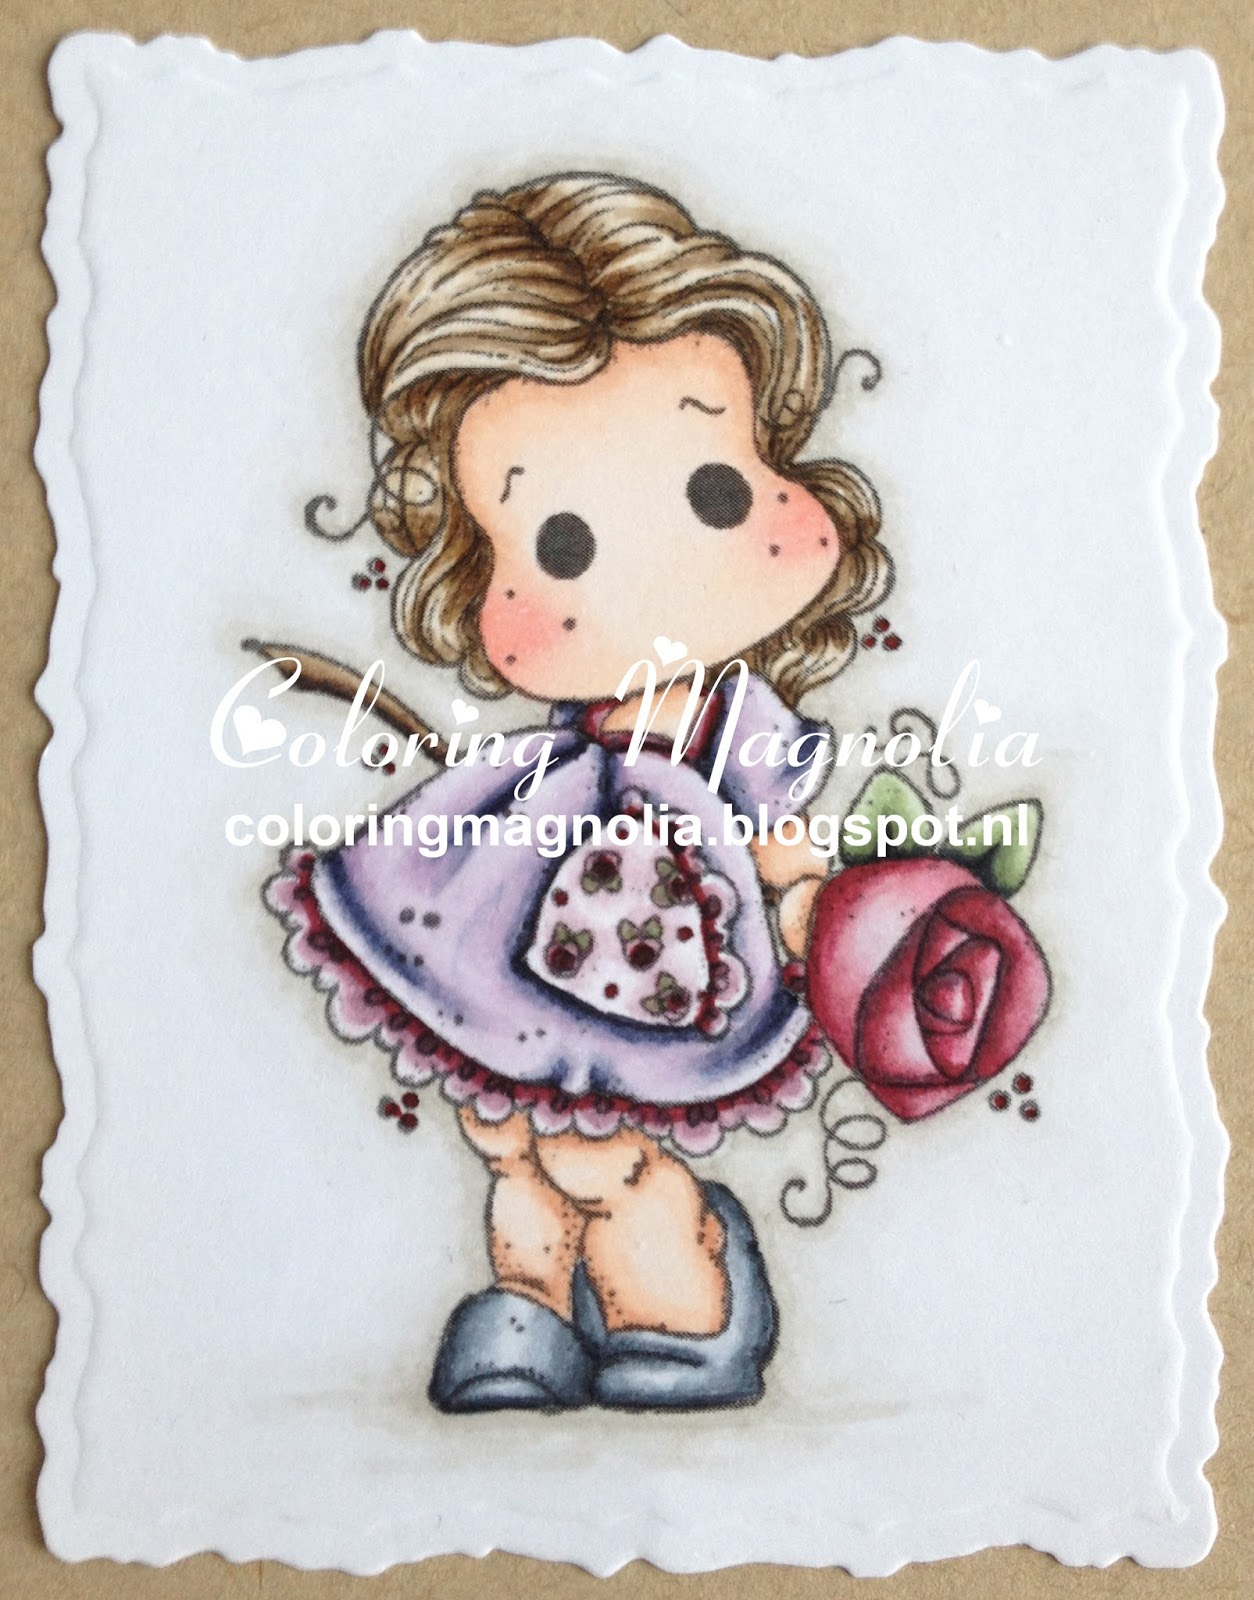 Coloring Magnolia Stamp 2014 Pink Lemonade Collection - Tilda With A Big Big Rose